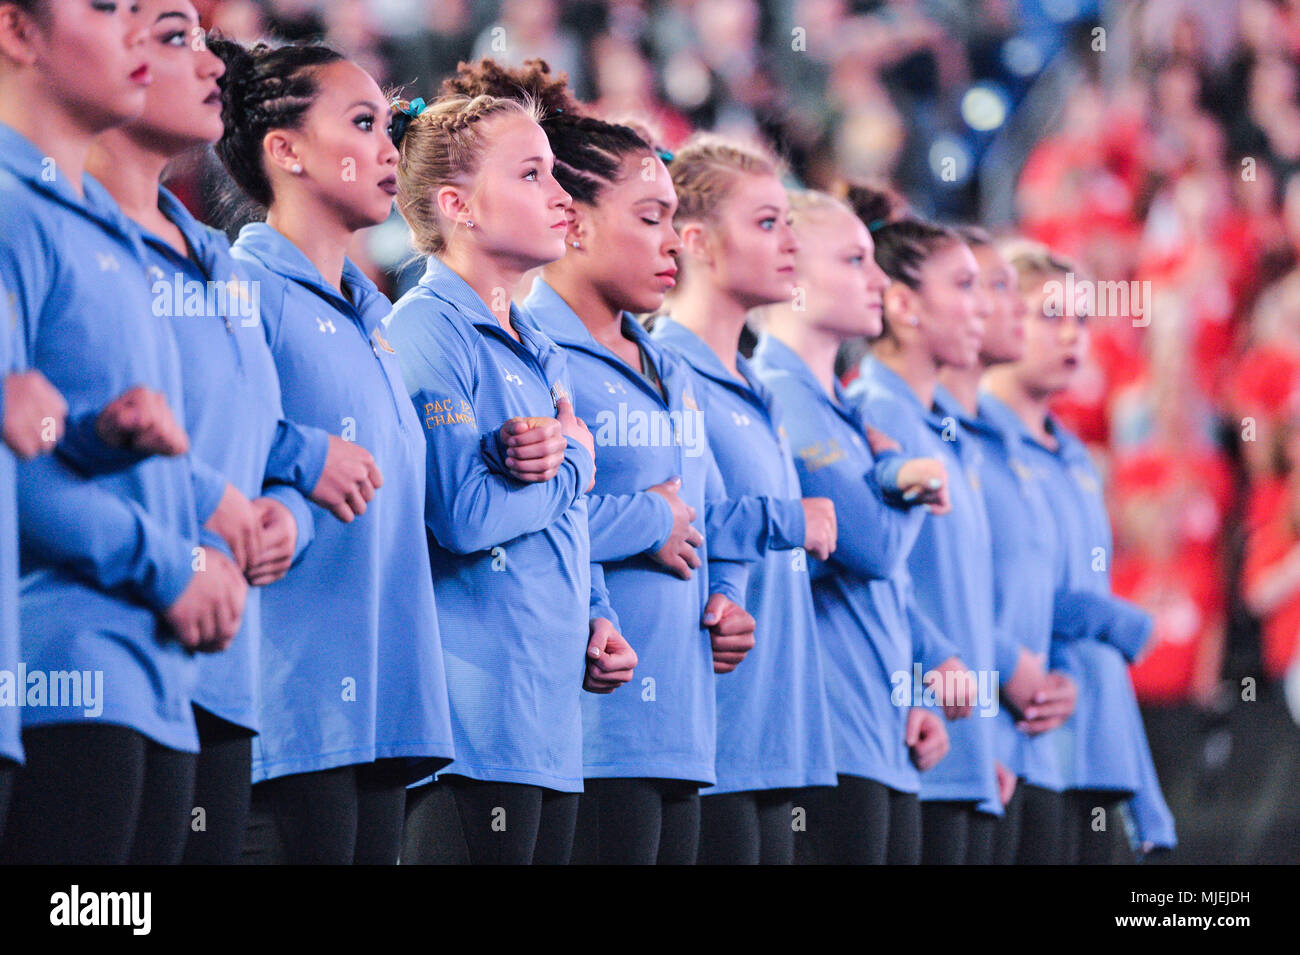 St. Louis, Missouri, USA. 21st Apr, 2018. The UCLA gymnastics team links arms during the national anthem before the meet held at Chaifetz Arena in St. Louis, Missouri. Credit: Amy Sanderson/ZUMA Wire/Alamy Live News - Stock Image